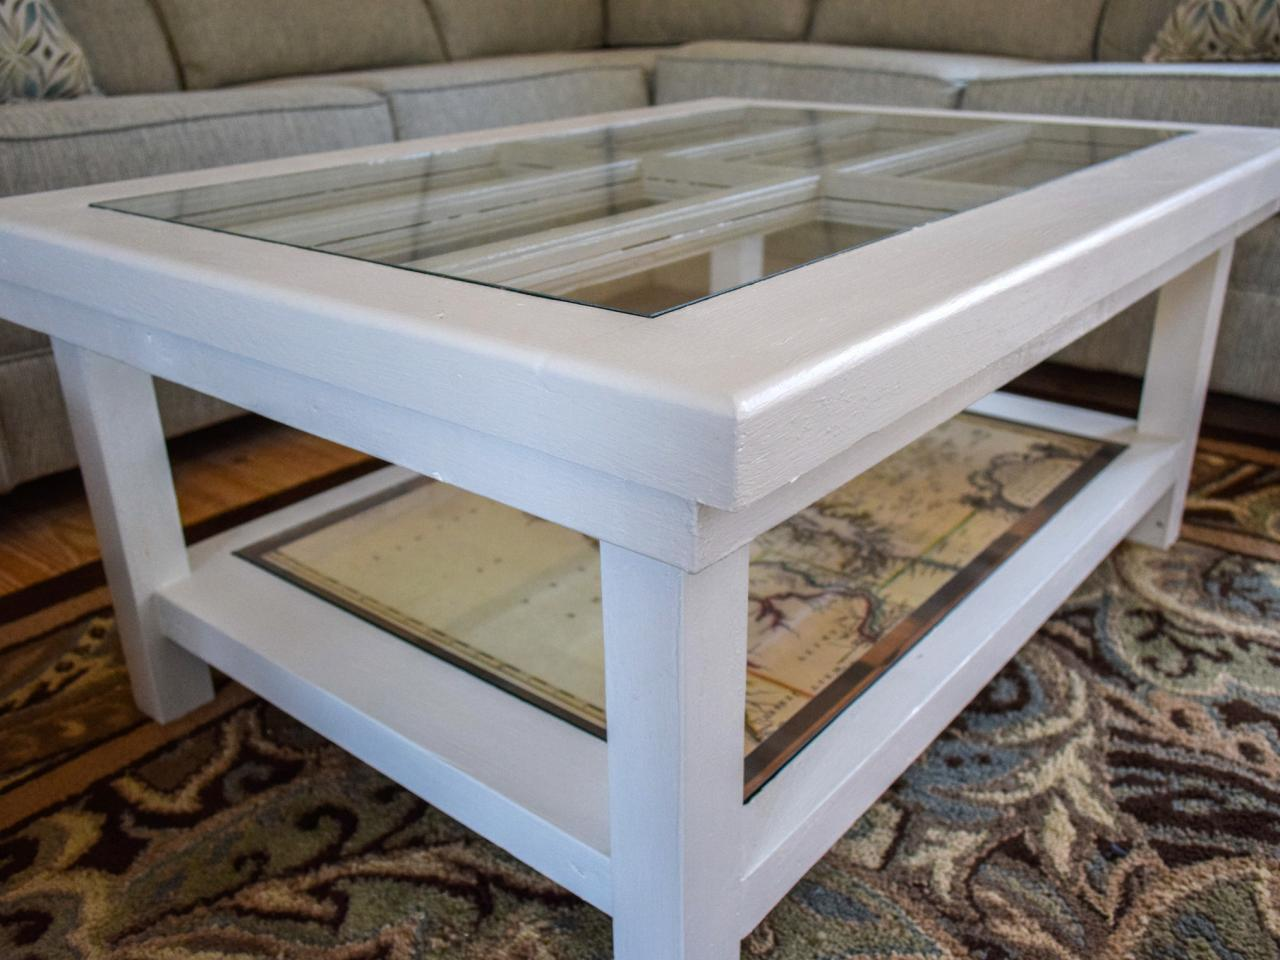 An Upcycled Door Becomes A Glass Top Coffee Table Diy Home Decor And Decorating Ideas Diy